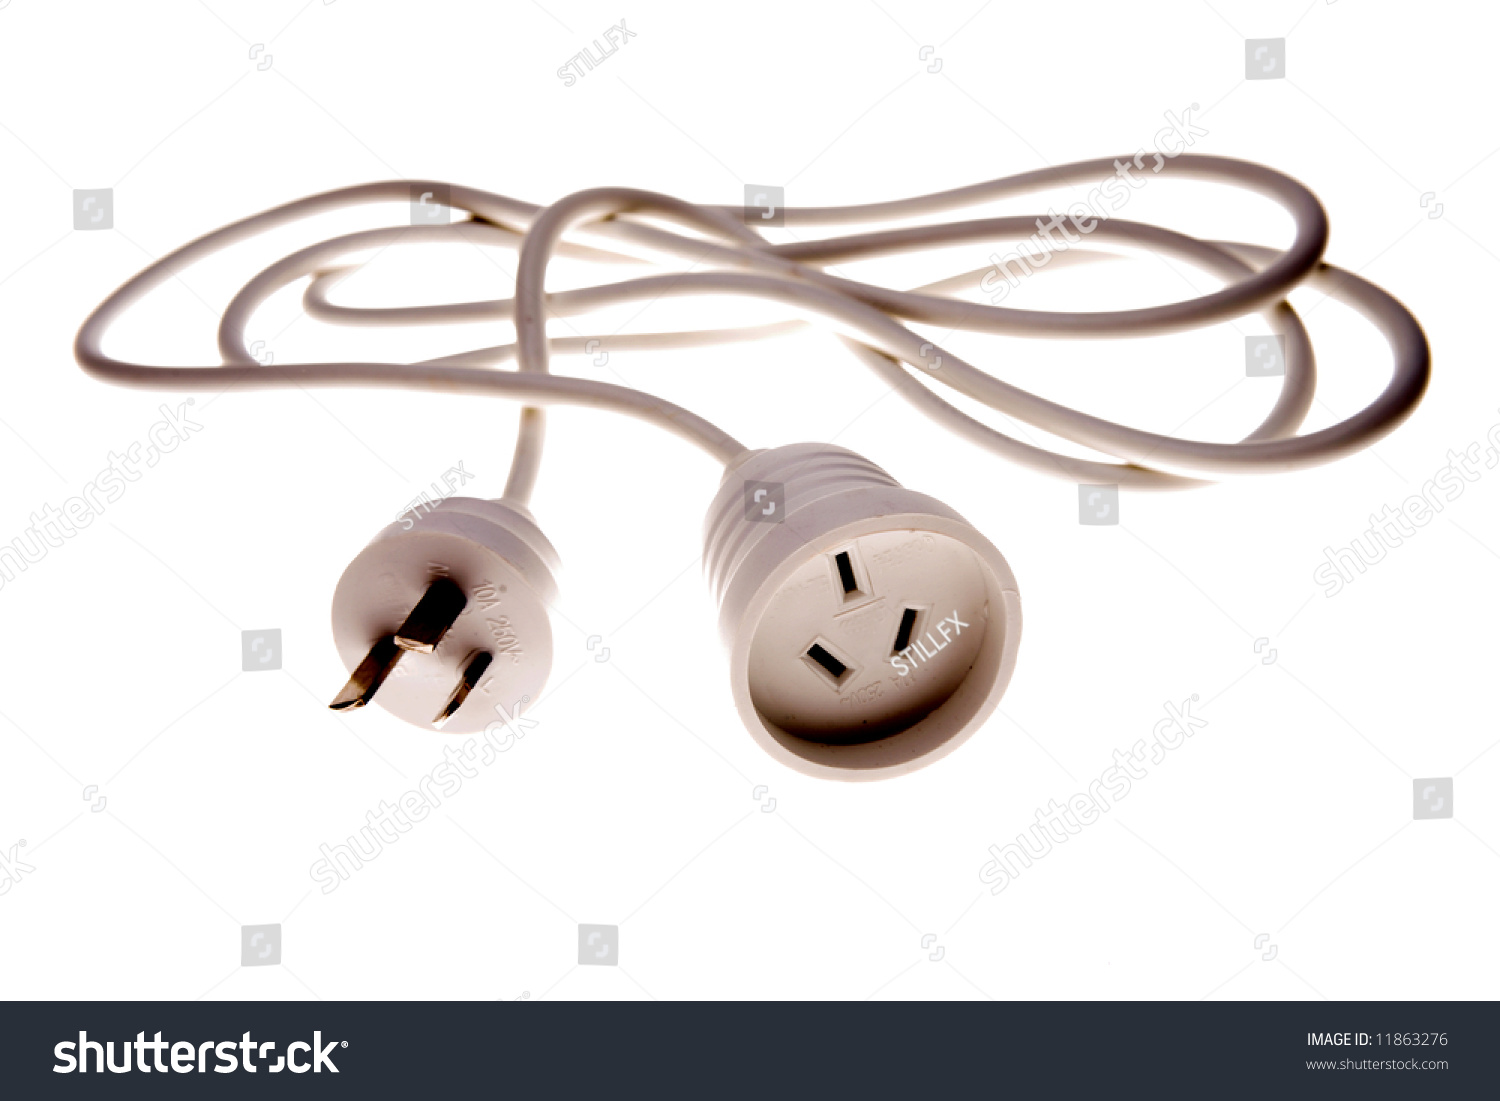 Electrical Plugs Asian Wiring New Zealand Photos Of